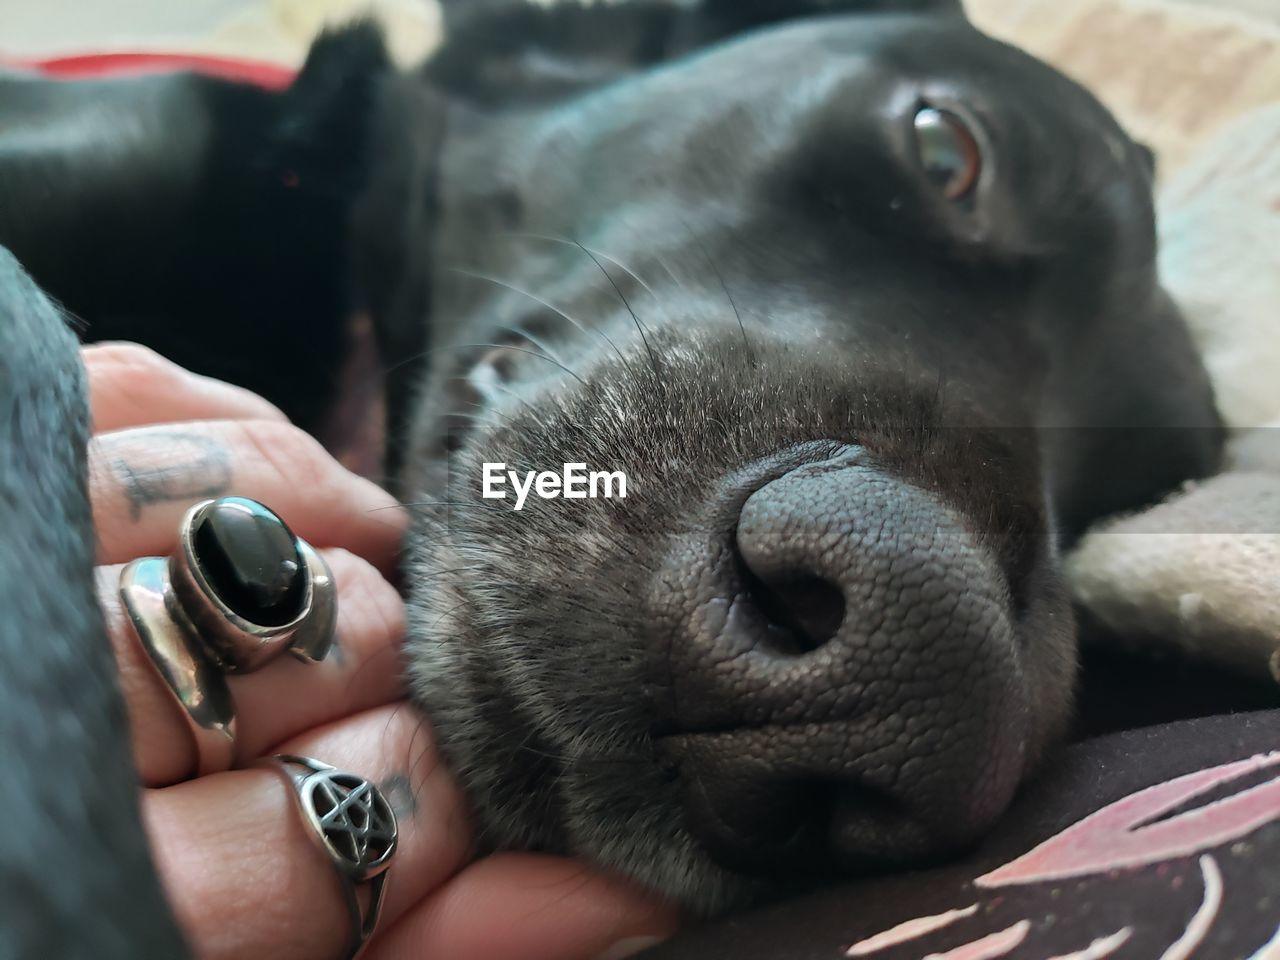 human hand, hand, animal themes, animal, mammal, one animal, domestic animals, human body part, pets, real people, domestic, one person, vertebrate, holding, finger, human finger, close-up, unrecognizable person, canine, body part, animal head, pet owner, animal nose